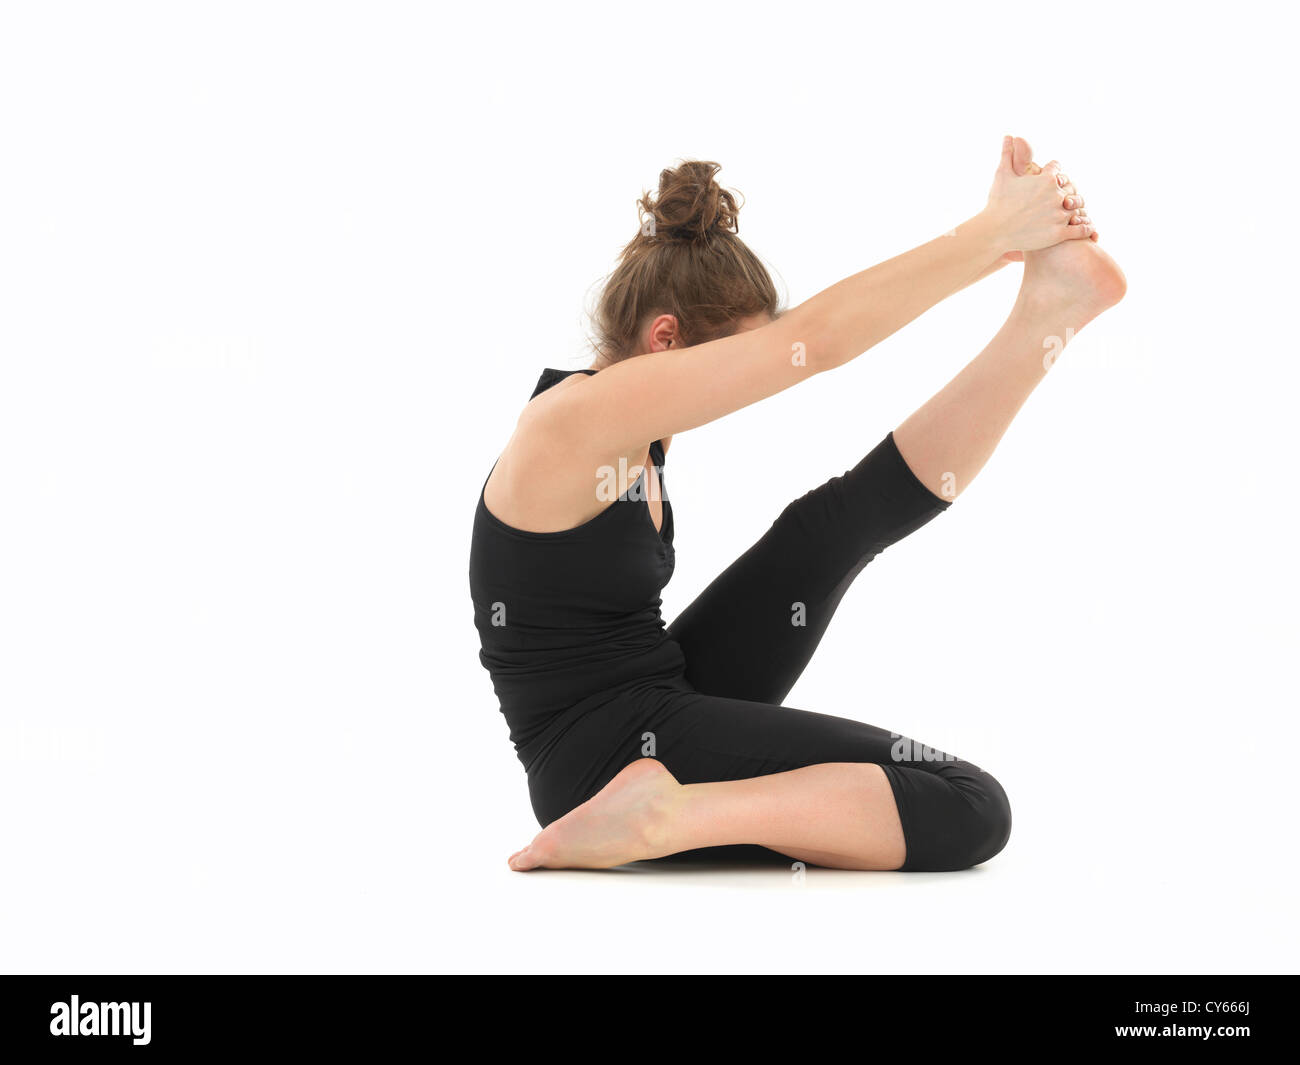 white woman dressed in black, performing difficult yoga pose, body view, on white background - Stock Image